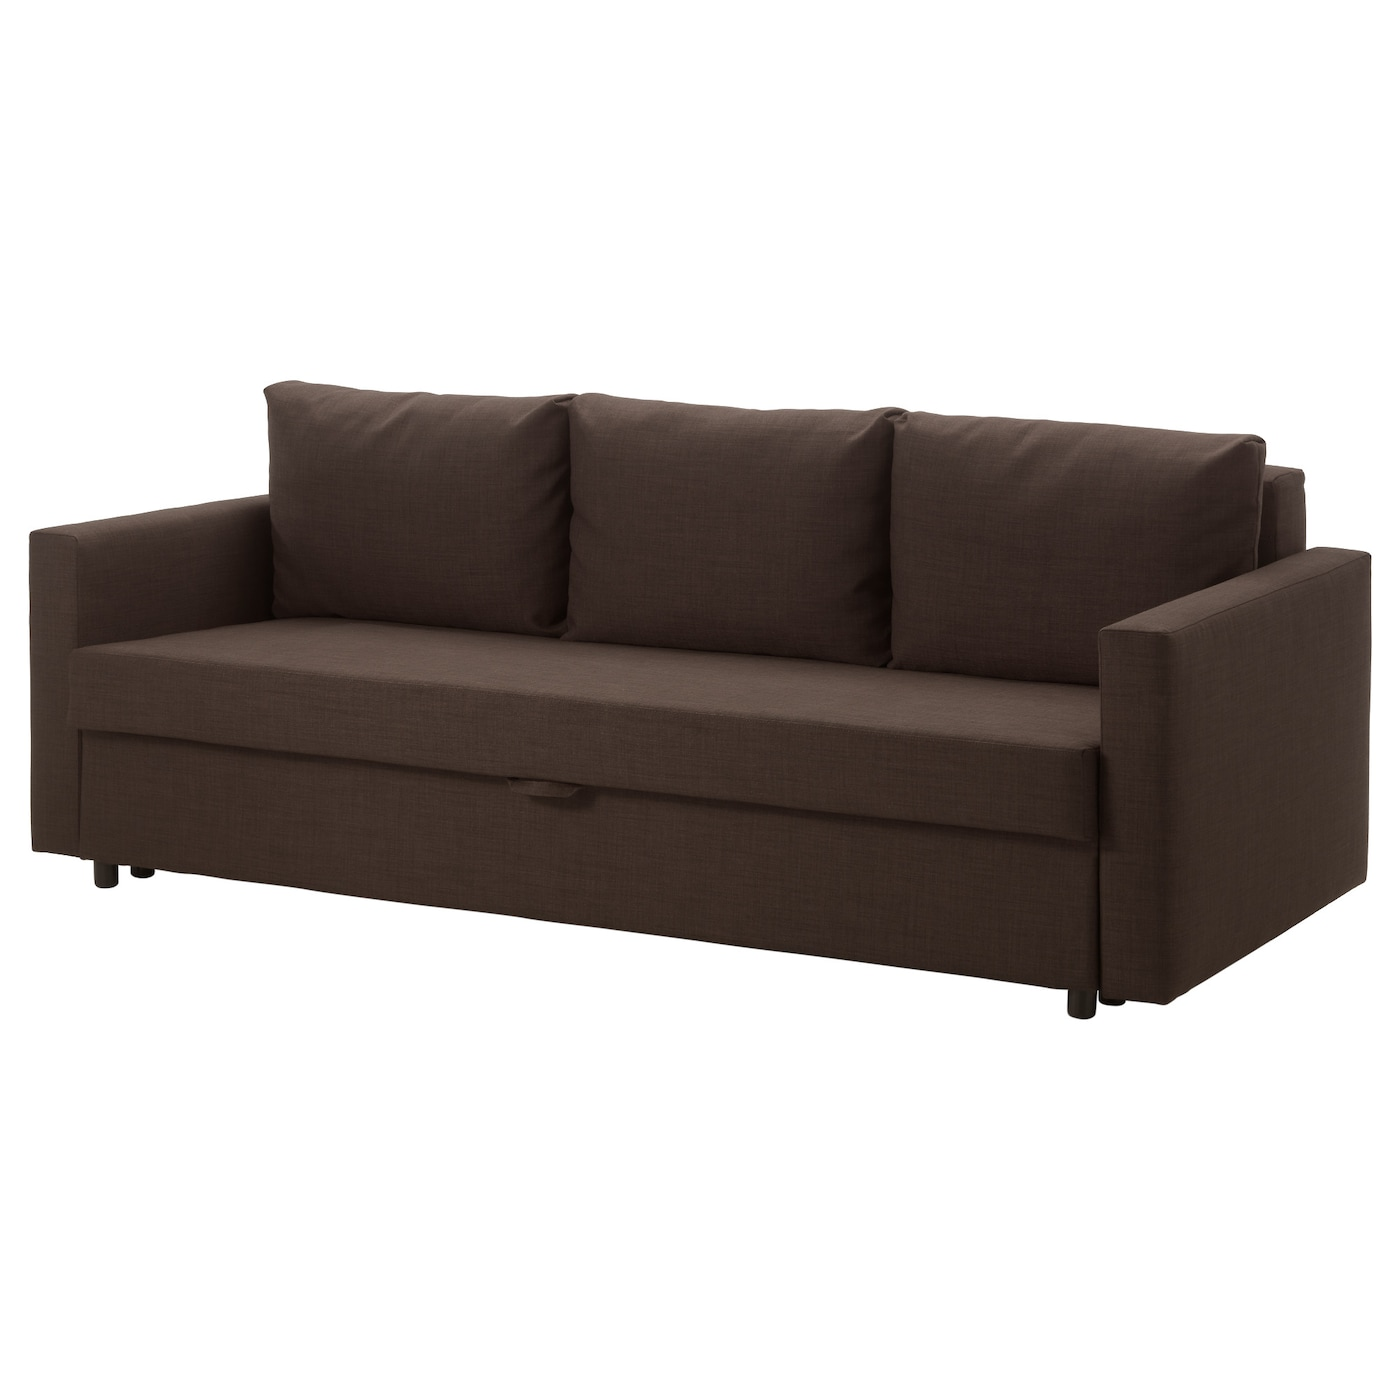 Friheten Three Seat Sofa Bed Skiftebo Brown Ikea